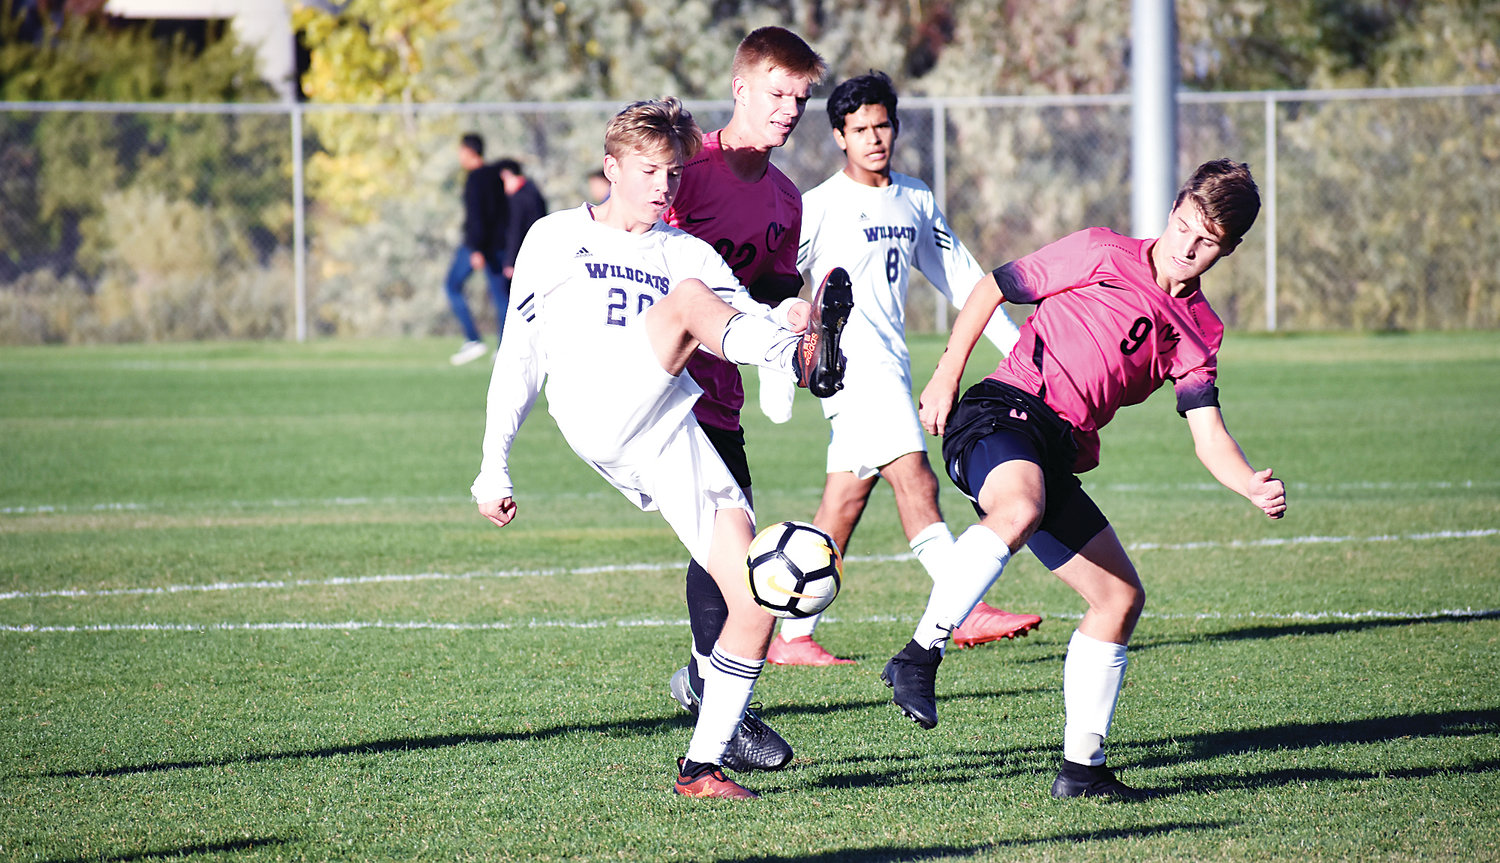 Arvada West sophomore Eli Ross (20) gave the Wildcats a 1-0 lead early in the second half against rival Ralston Valley on Oct. 4 at the North Area Athletic Complex in Arvada. A-West took a 2-0 victory.